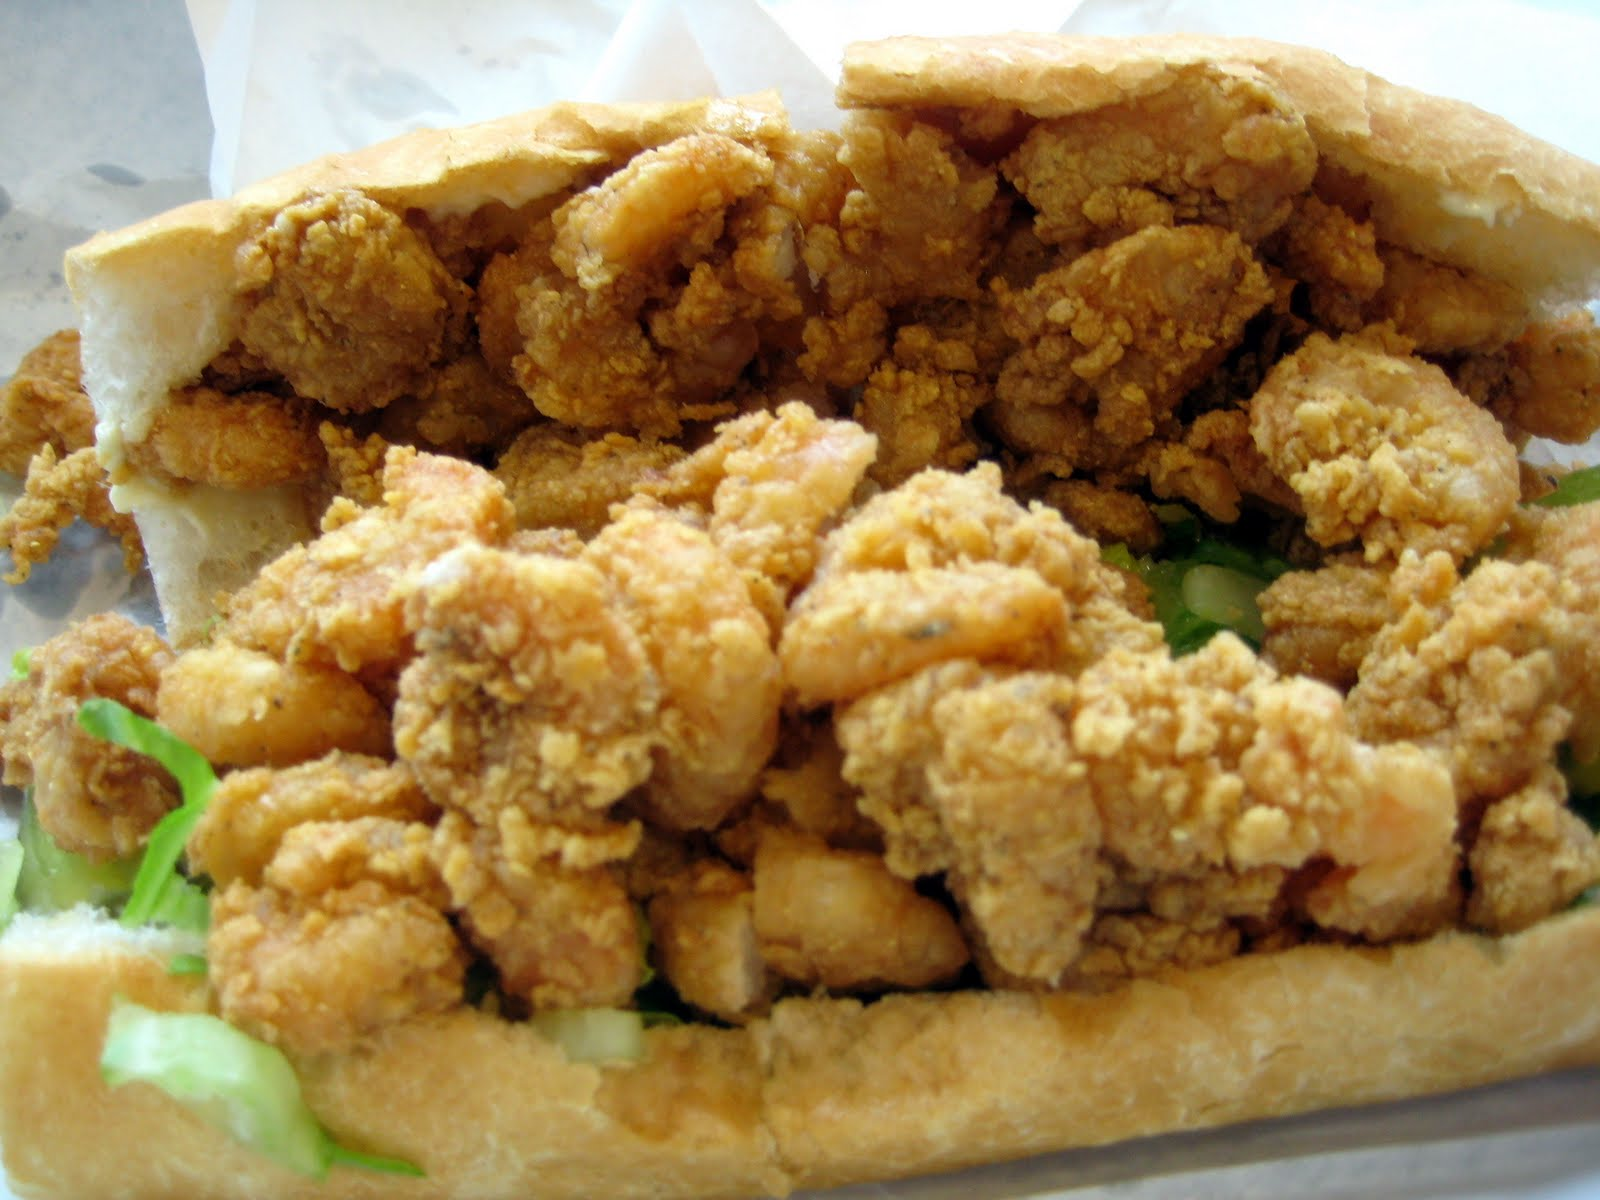 The Fried Shrimp Po-Boy | Beauty live